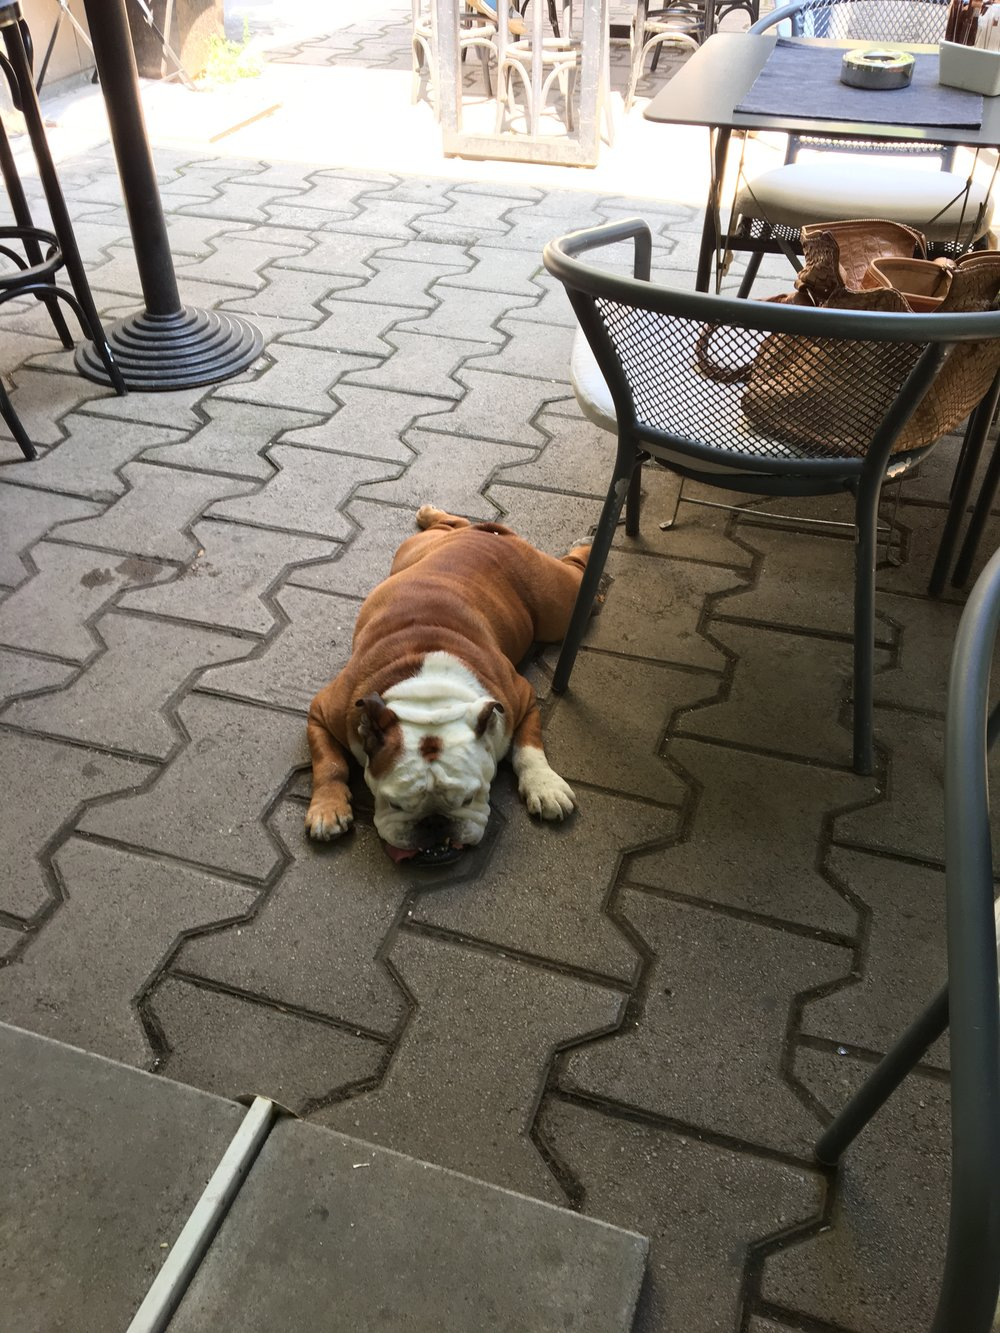 Bonus point - the people and canine watching at Lime are some of the best in Sofia!